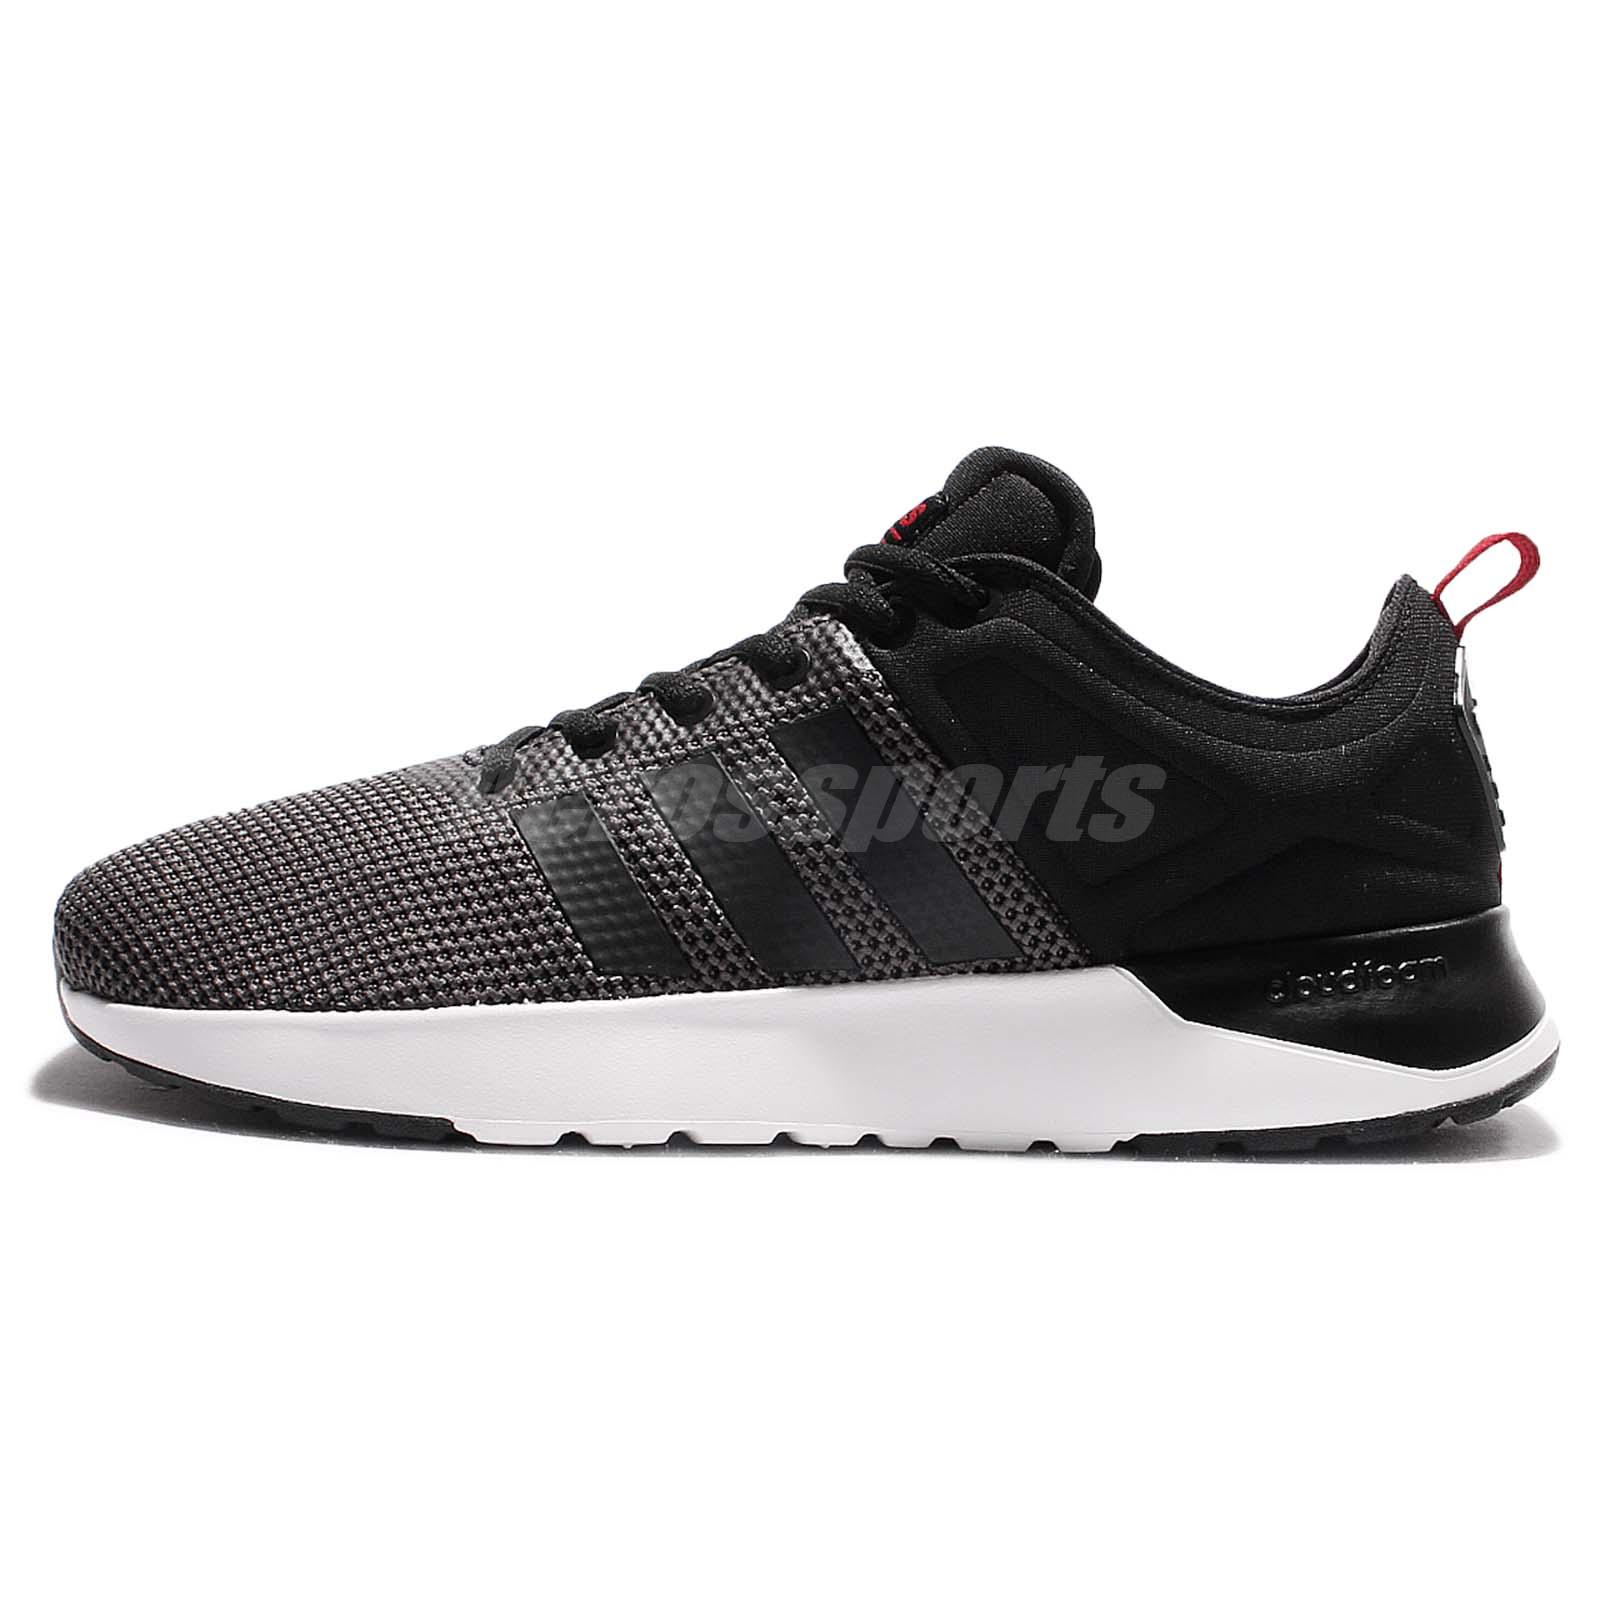 best loved 28b8b fc0a8 ... 10k runeo label f97807 navy chaussures prix de lancement adidas 930a5  d1874  ebay adidas neo label cloudfoam super racer black grey mens running  shoes ...